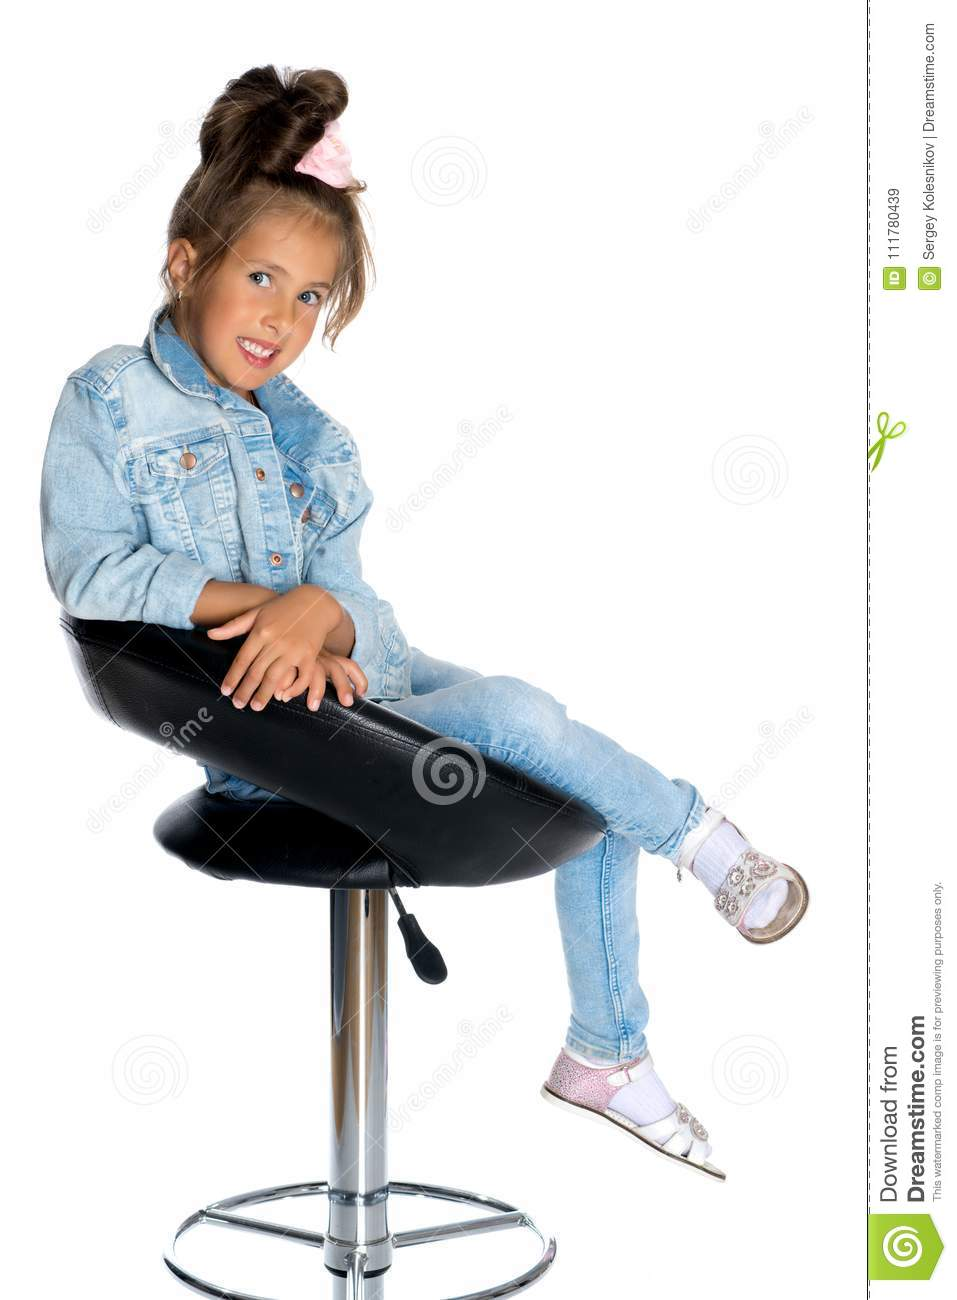 Little girl on a swivel chair